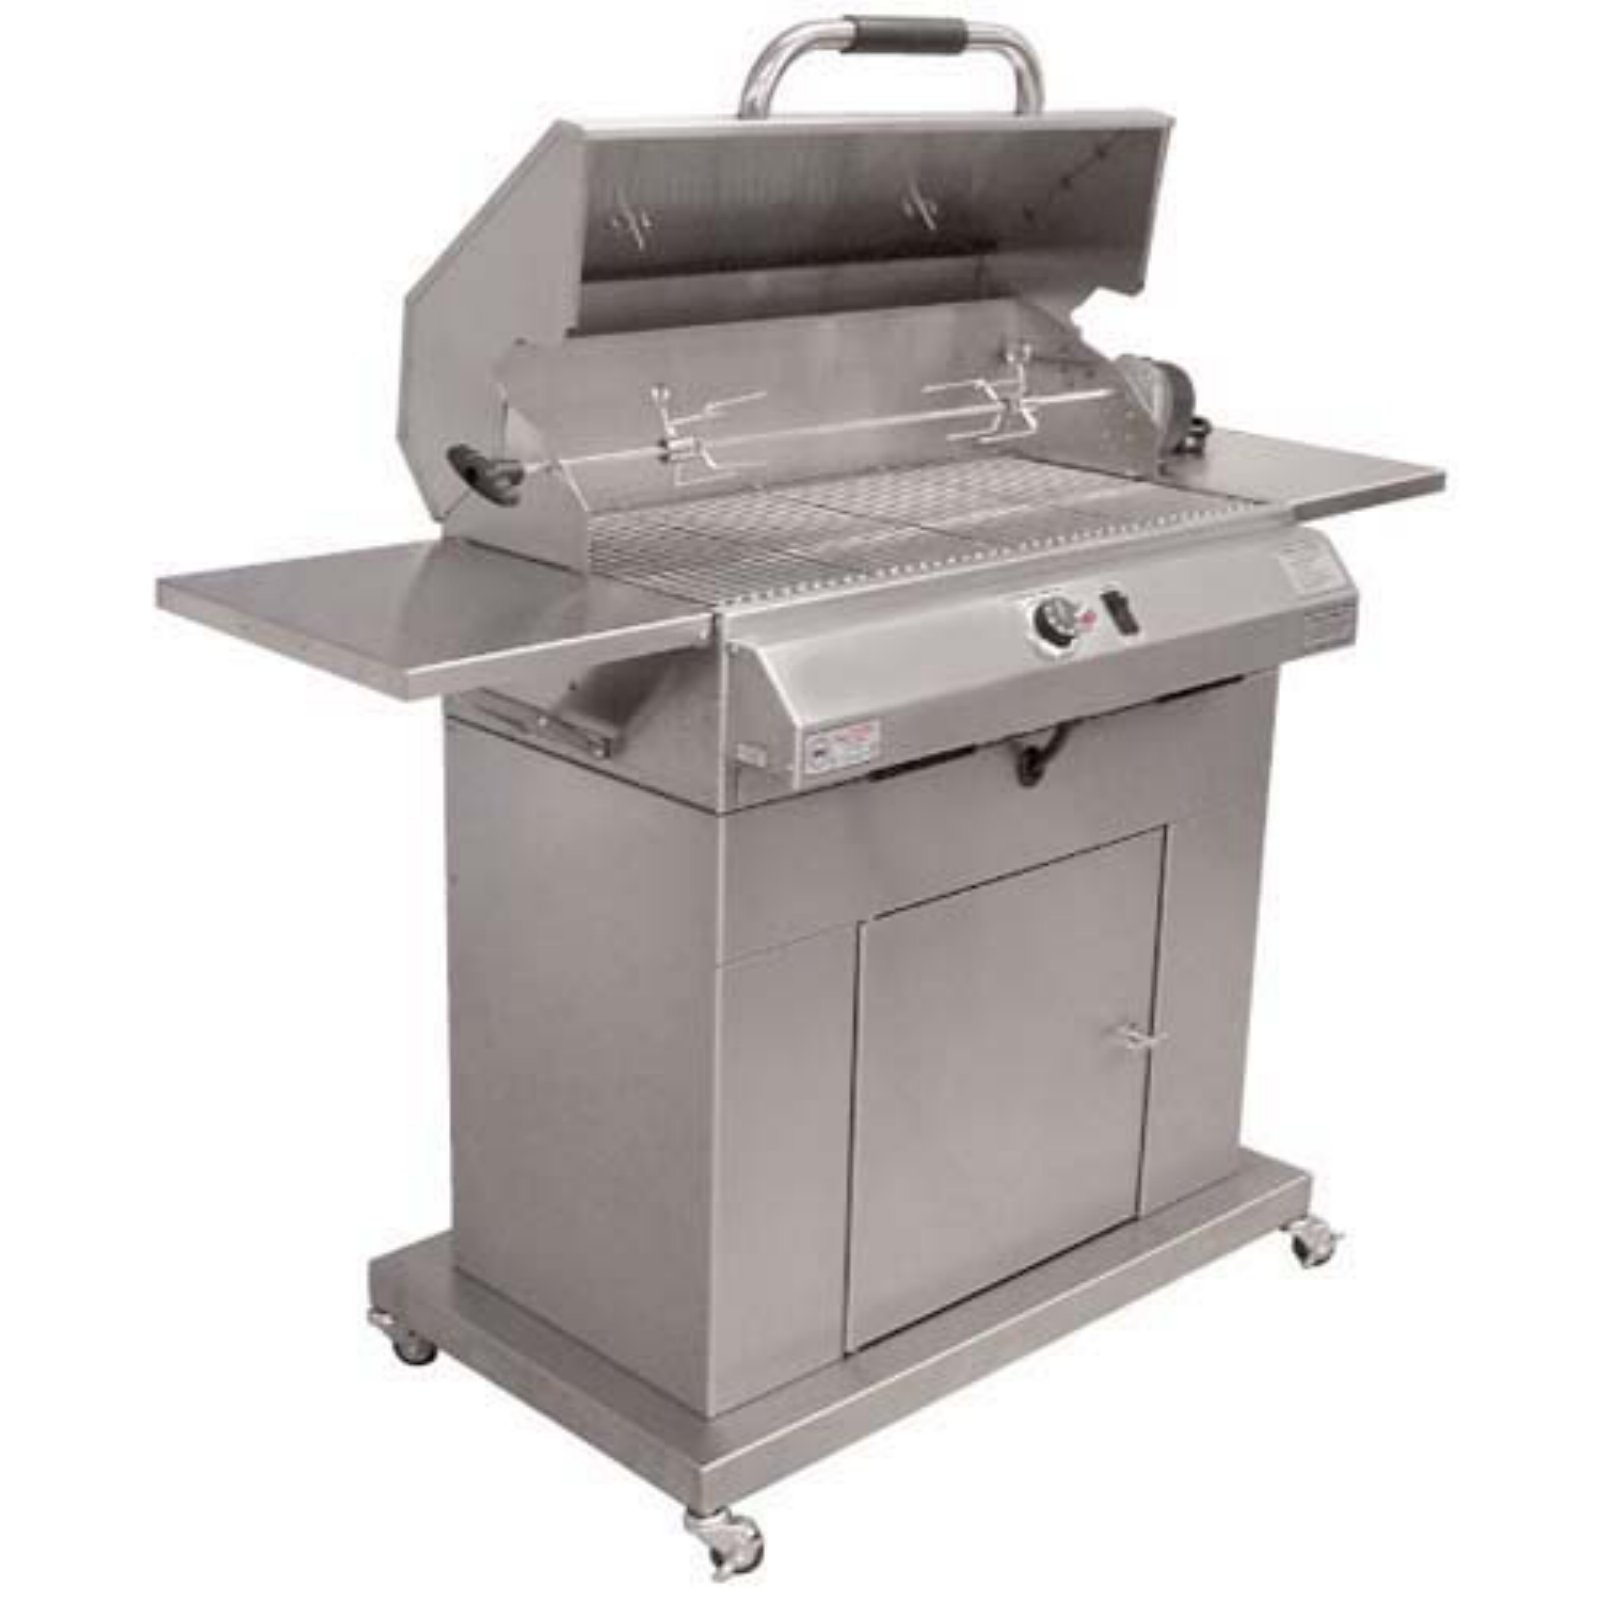 Electri-Chef 32 in. Electric Grill with Cart Single Burner by Electri - Chef Grill